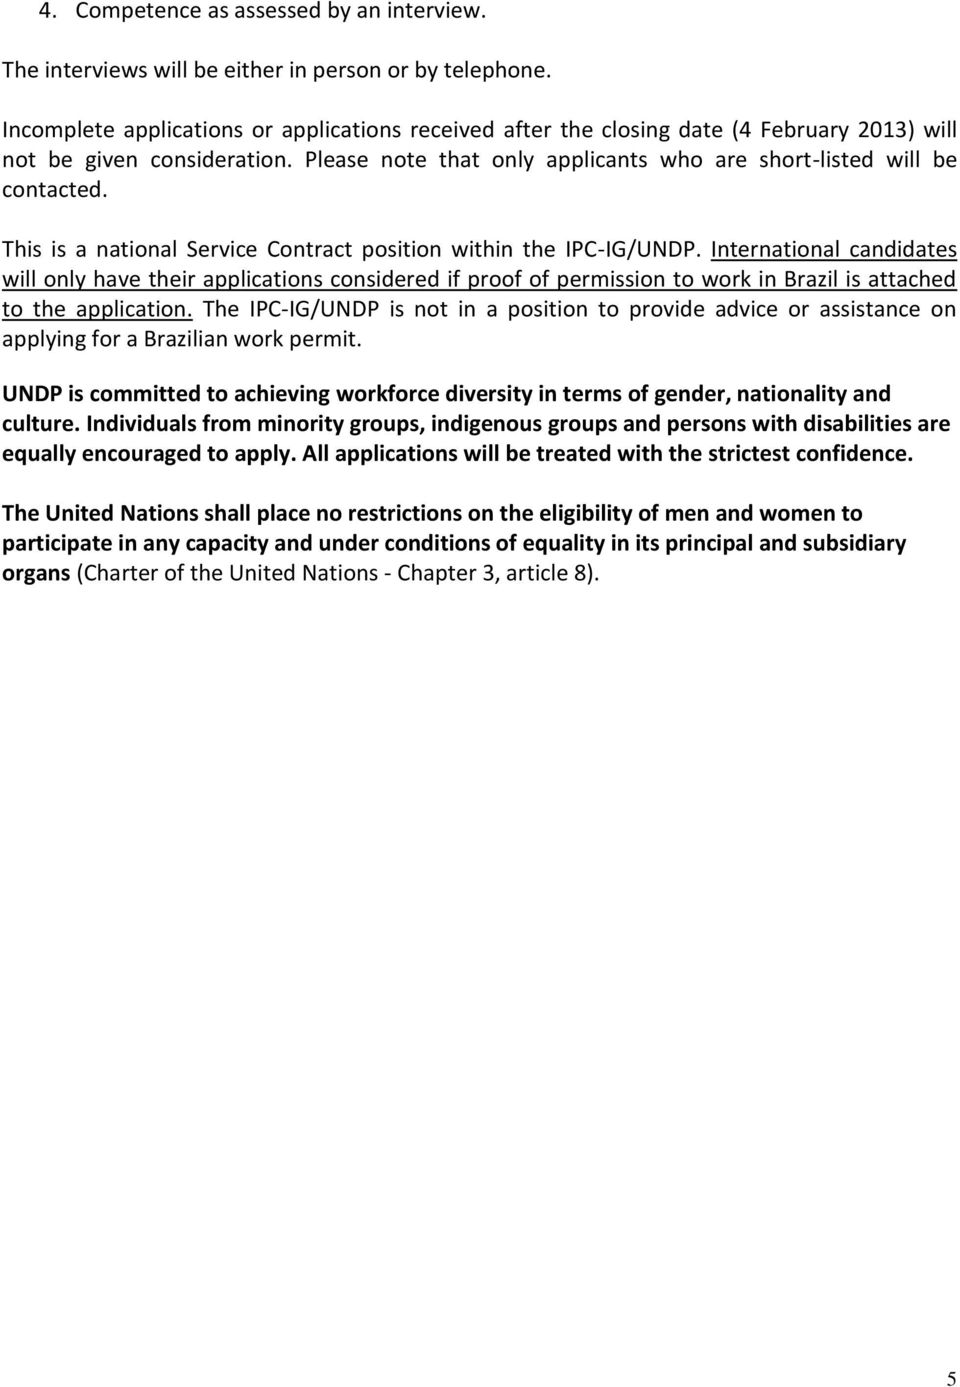 This is a national Service Contract position within the IPC-IG/UNDP.